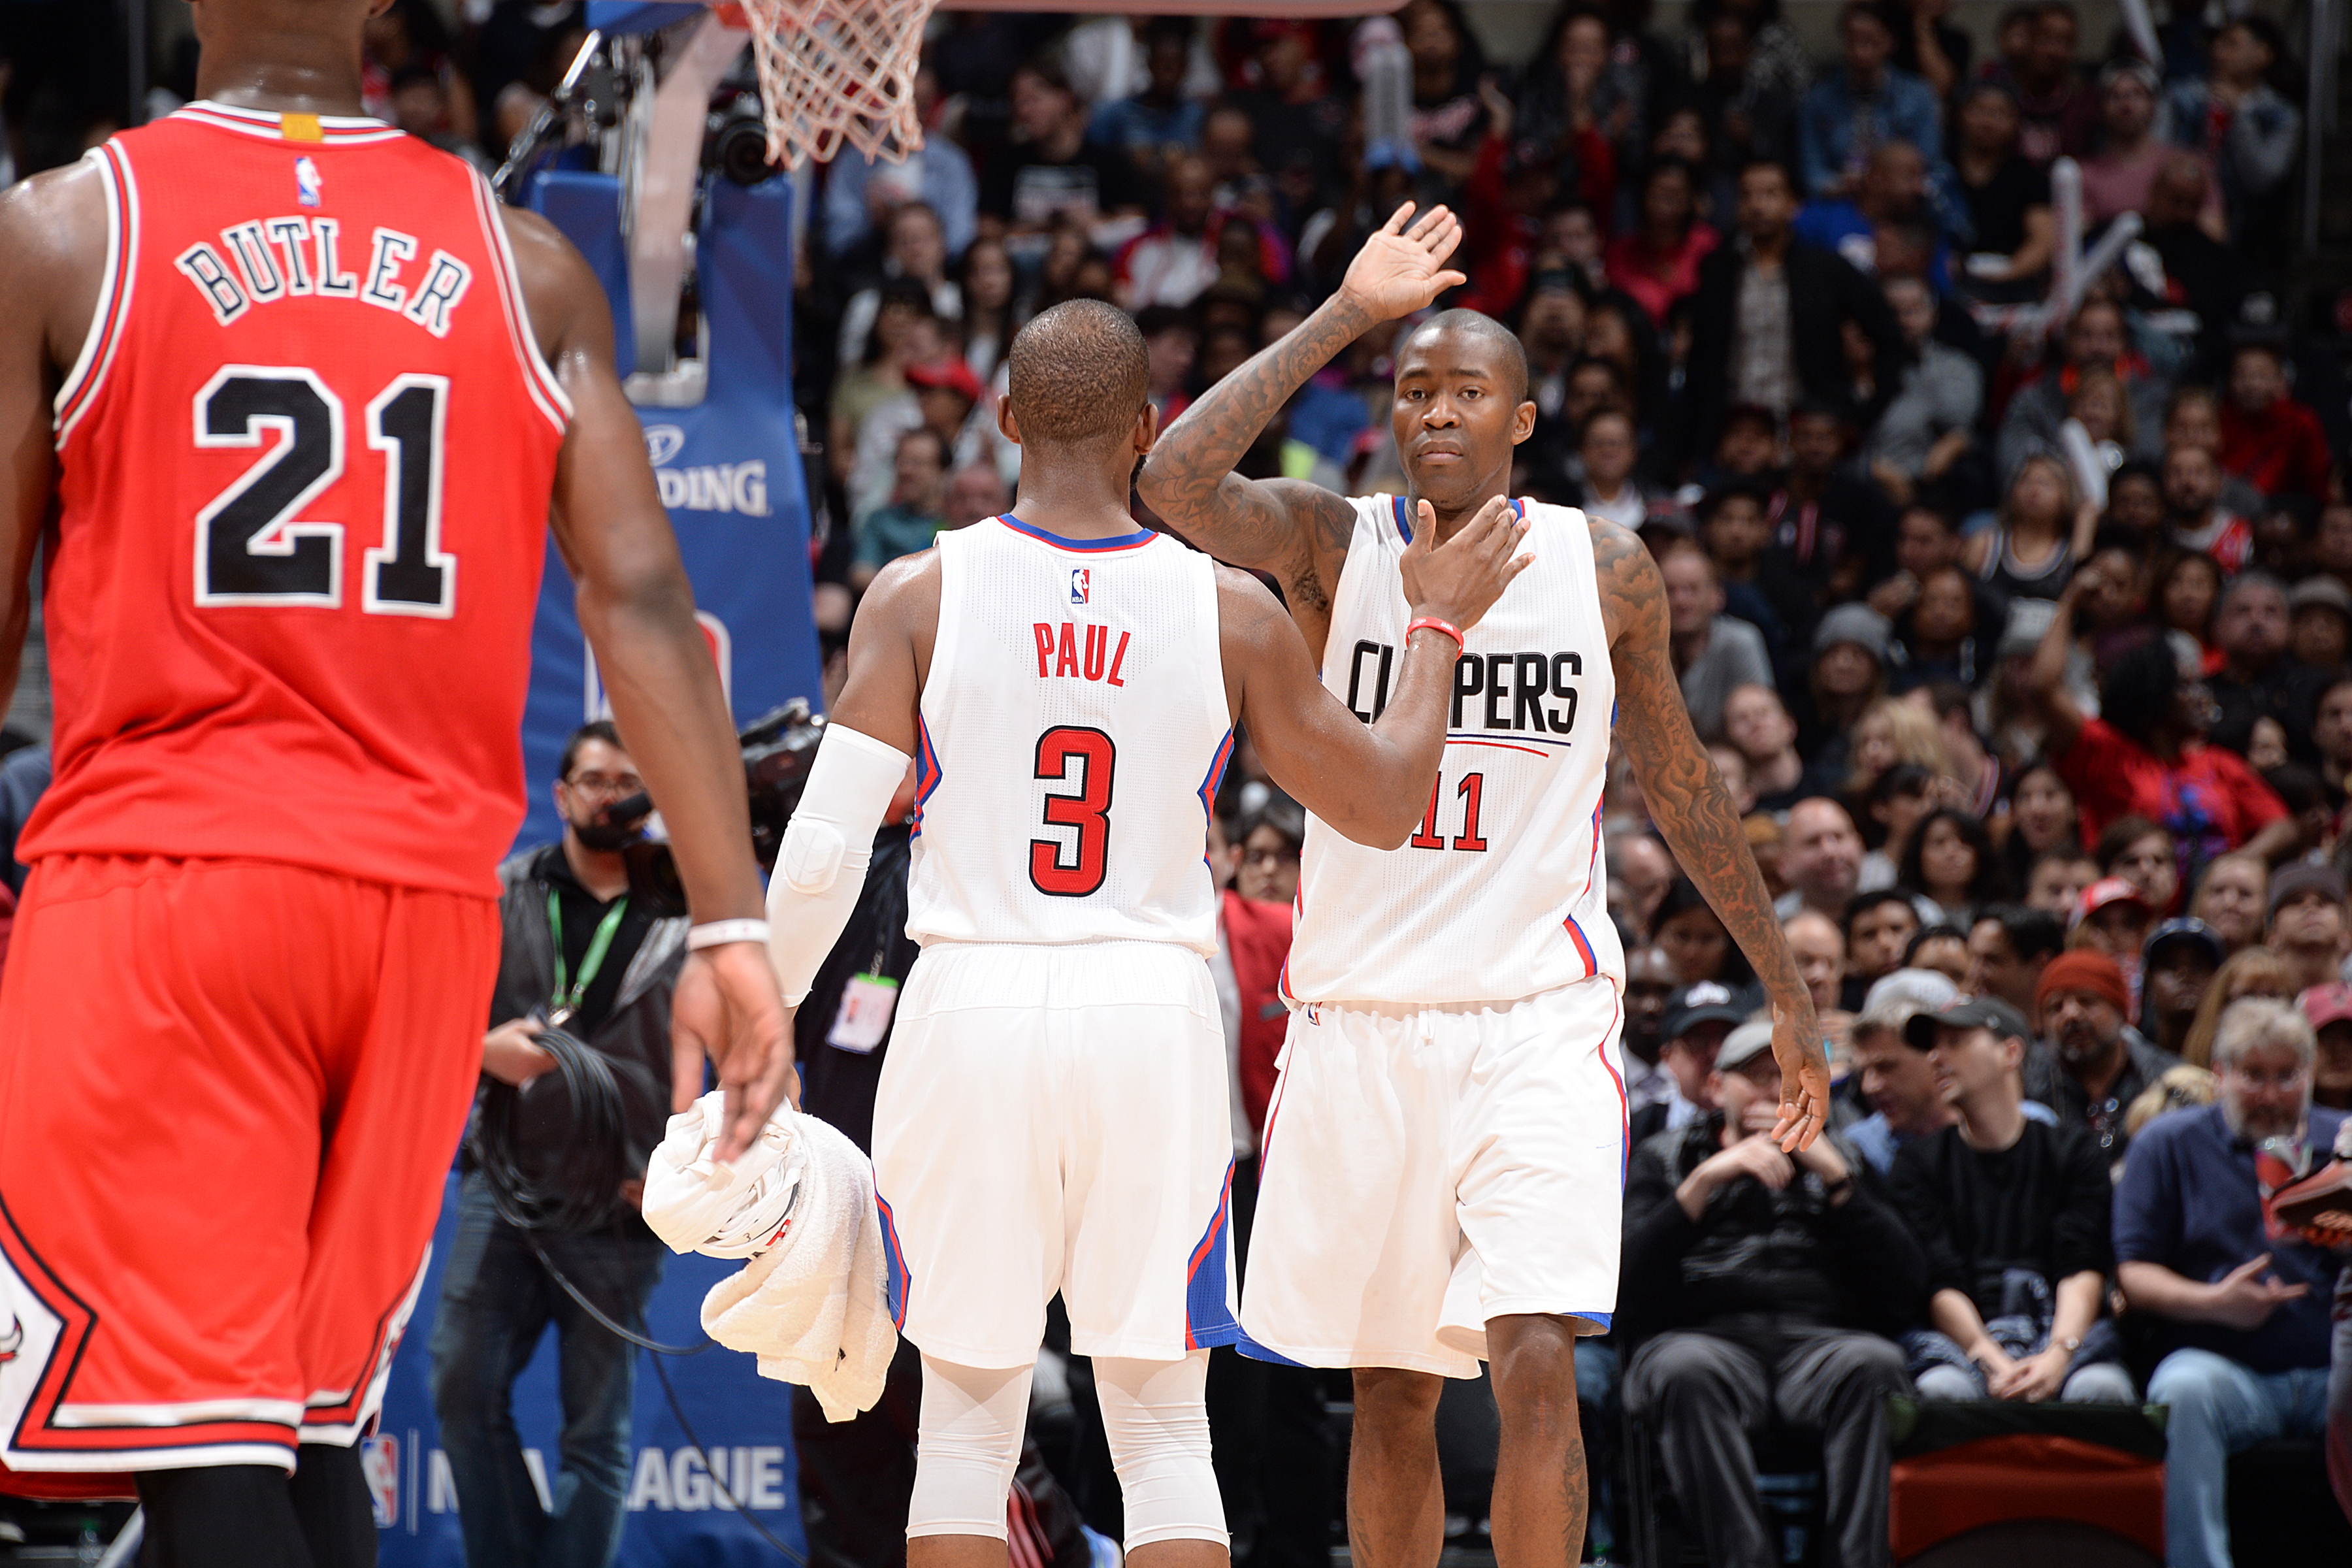 LOS ANGELES, CA - JANUARY 31:  Jamal Crawford #11 shakes hands with Chris Paul #3 of the Los Angeles Clippers during the game against the Chicago Bulls on January 31, 2016 at STAPLES Center in Los Angeles, California. (Photo by Andrew D. Bernstein/NBAE vi